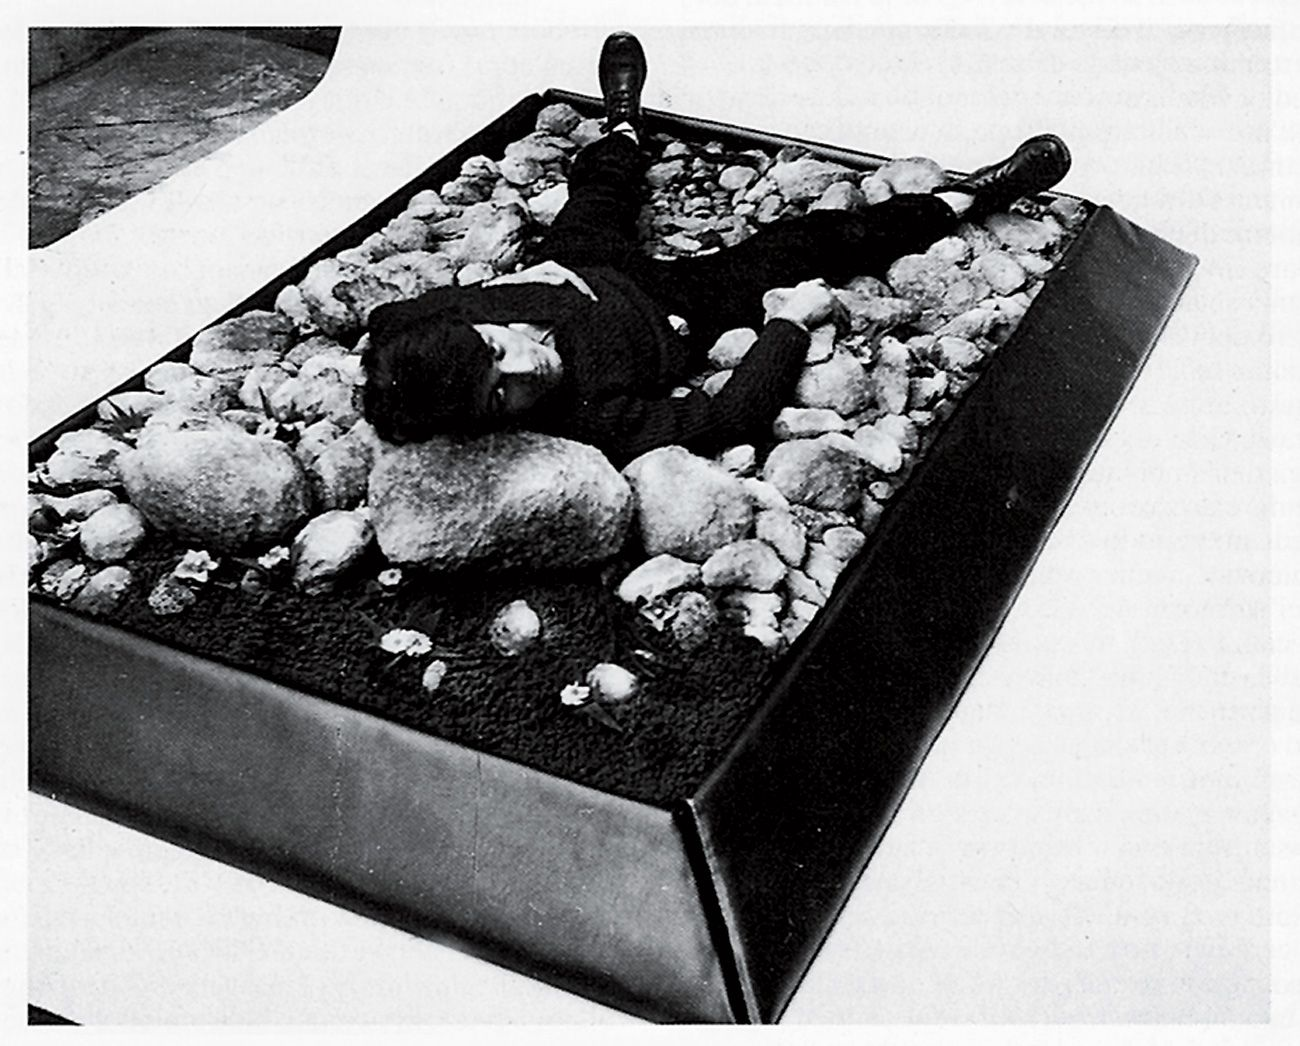 "Piero Gilardo: Stone-Bed. Gilberto Zorio lying on ""Stones-bed"" in Gilardi's Turin studio, 1967.  Polyurethane foam, 78 3/4 by 39 1/4 by 11 3/4 inches. Photo courtesy the artist."